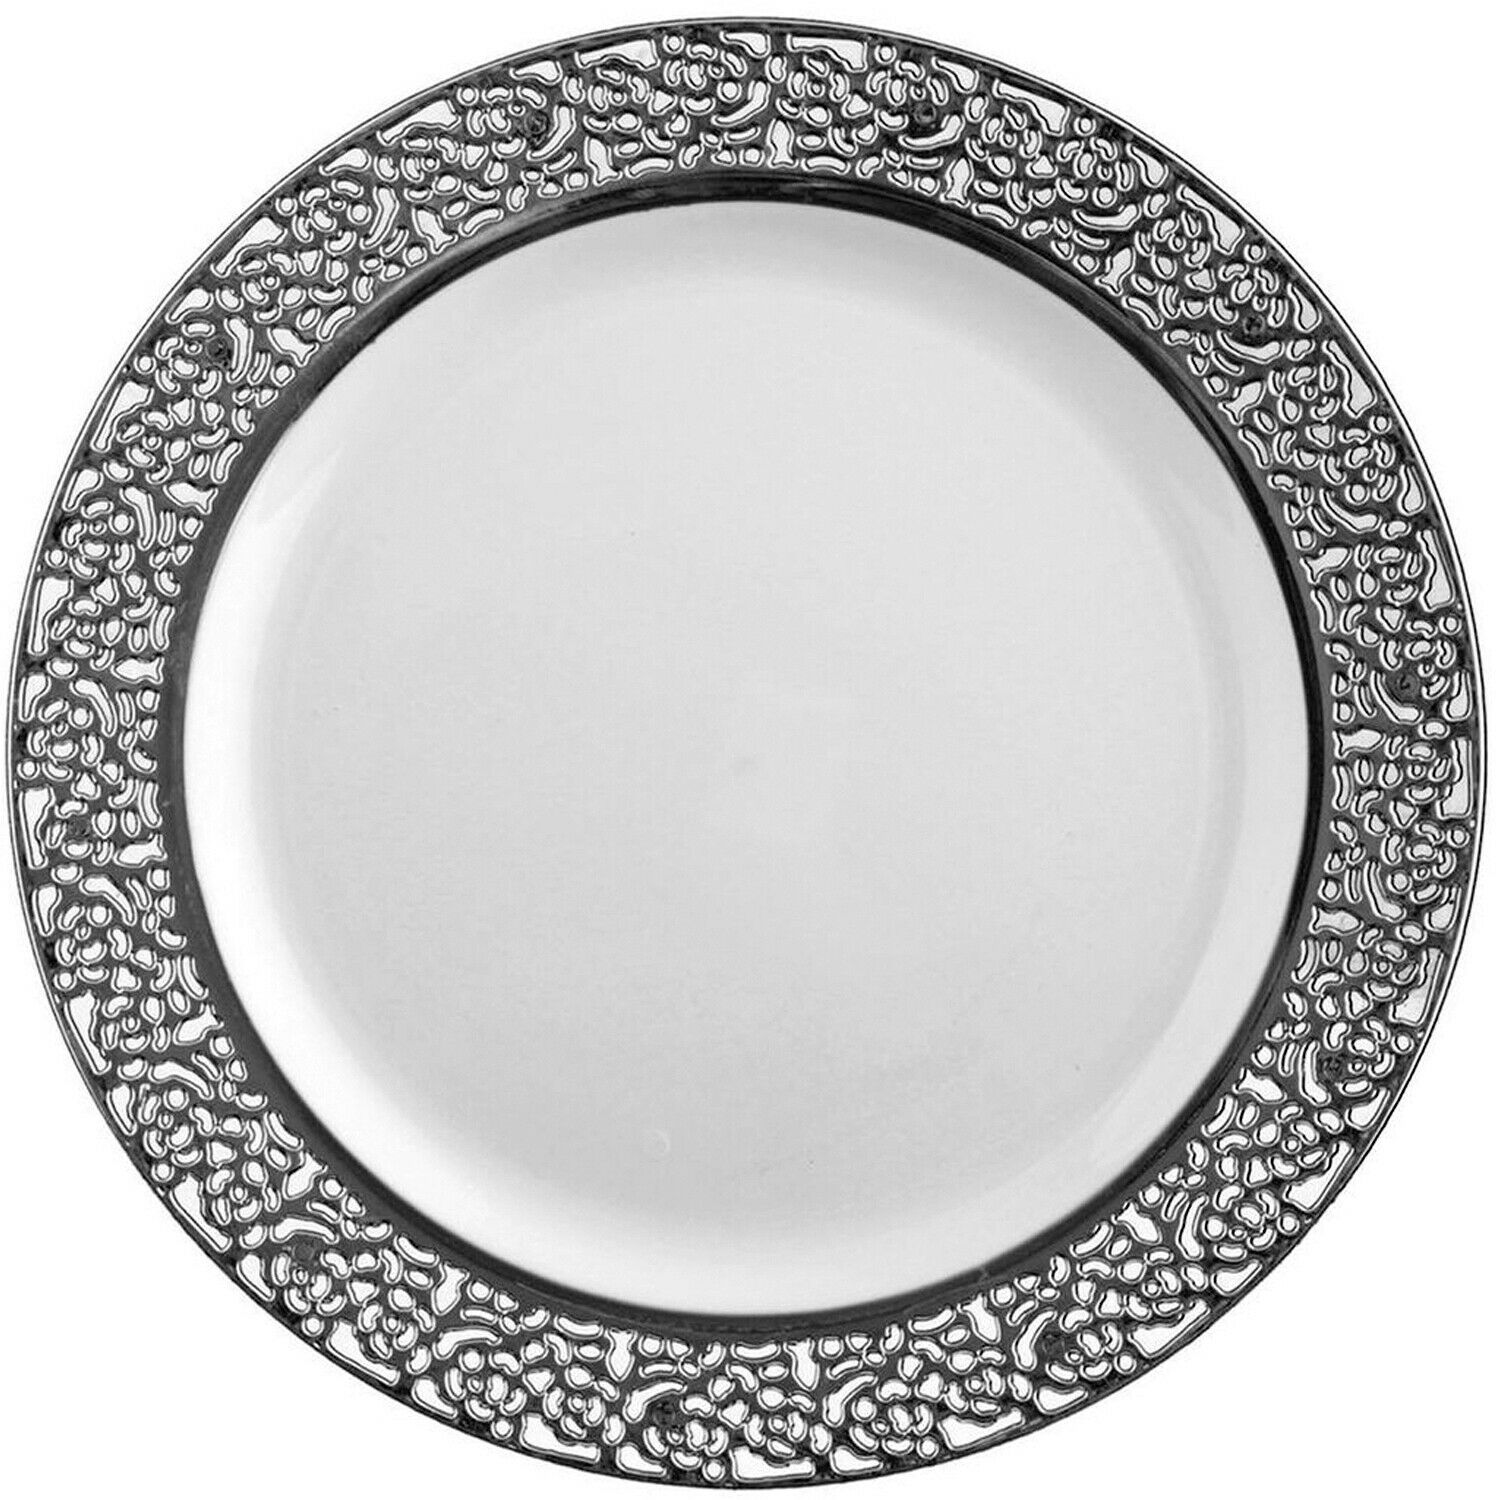 Fancy Inspiration Disposable Plastic Dinner Plate 10.25  Lace Silber Set of 10pc